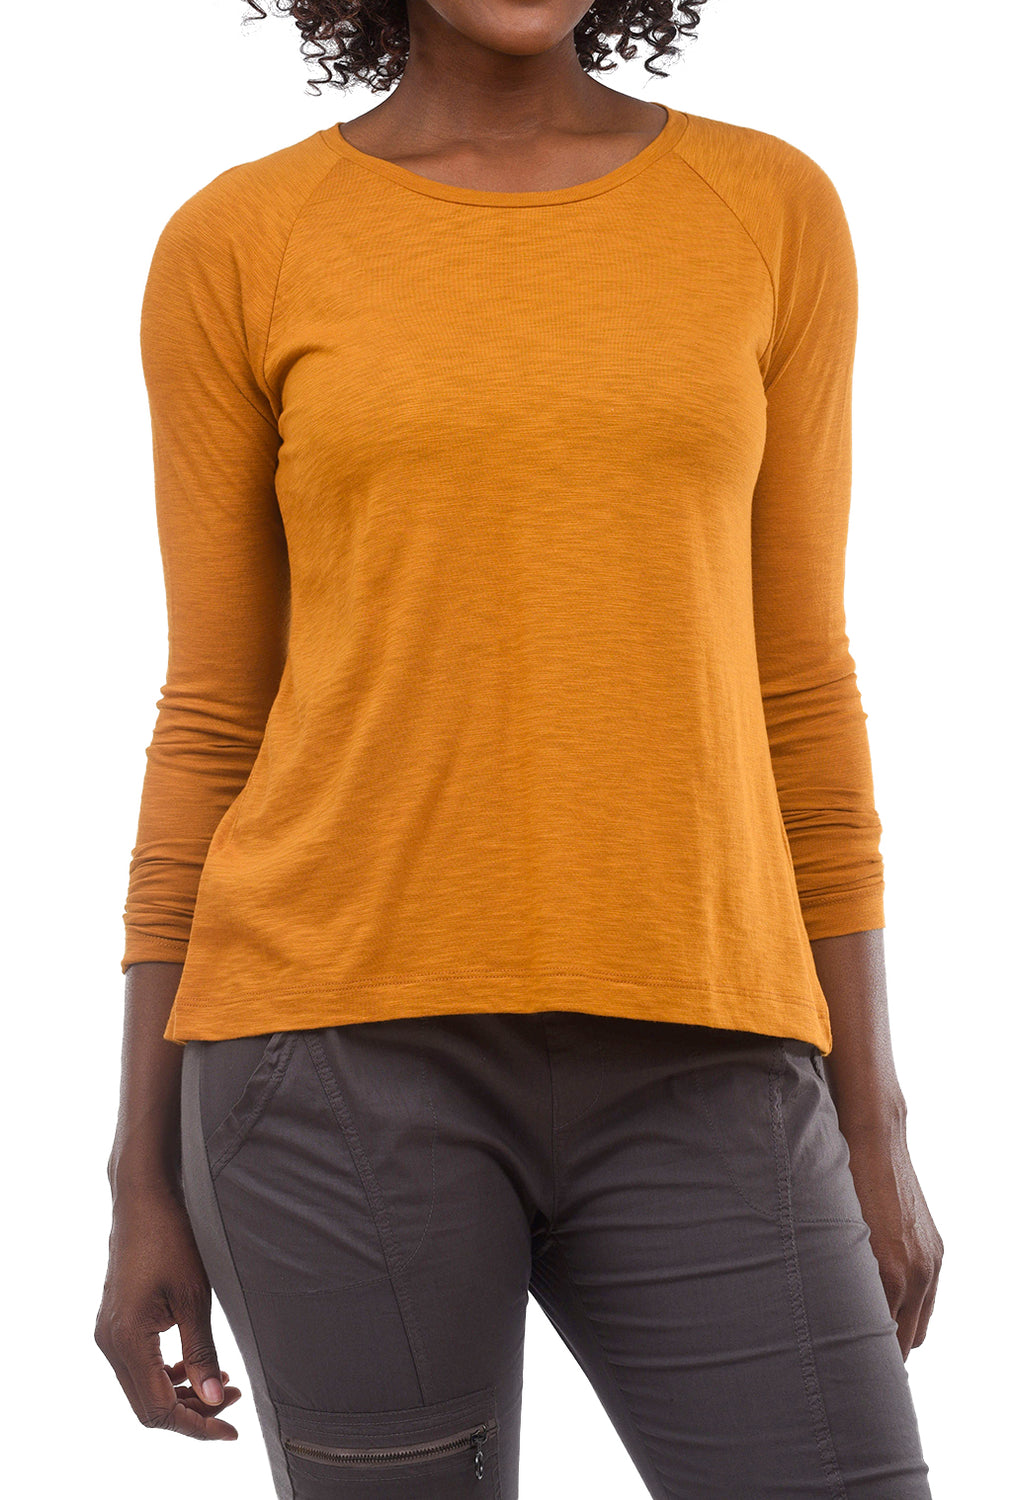 Lilla P L/S Pleat-Back Top, Curry